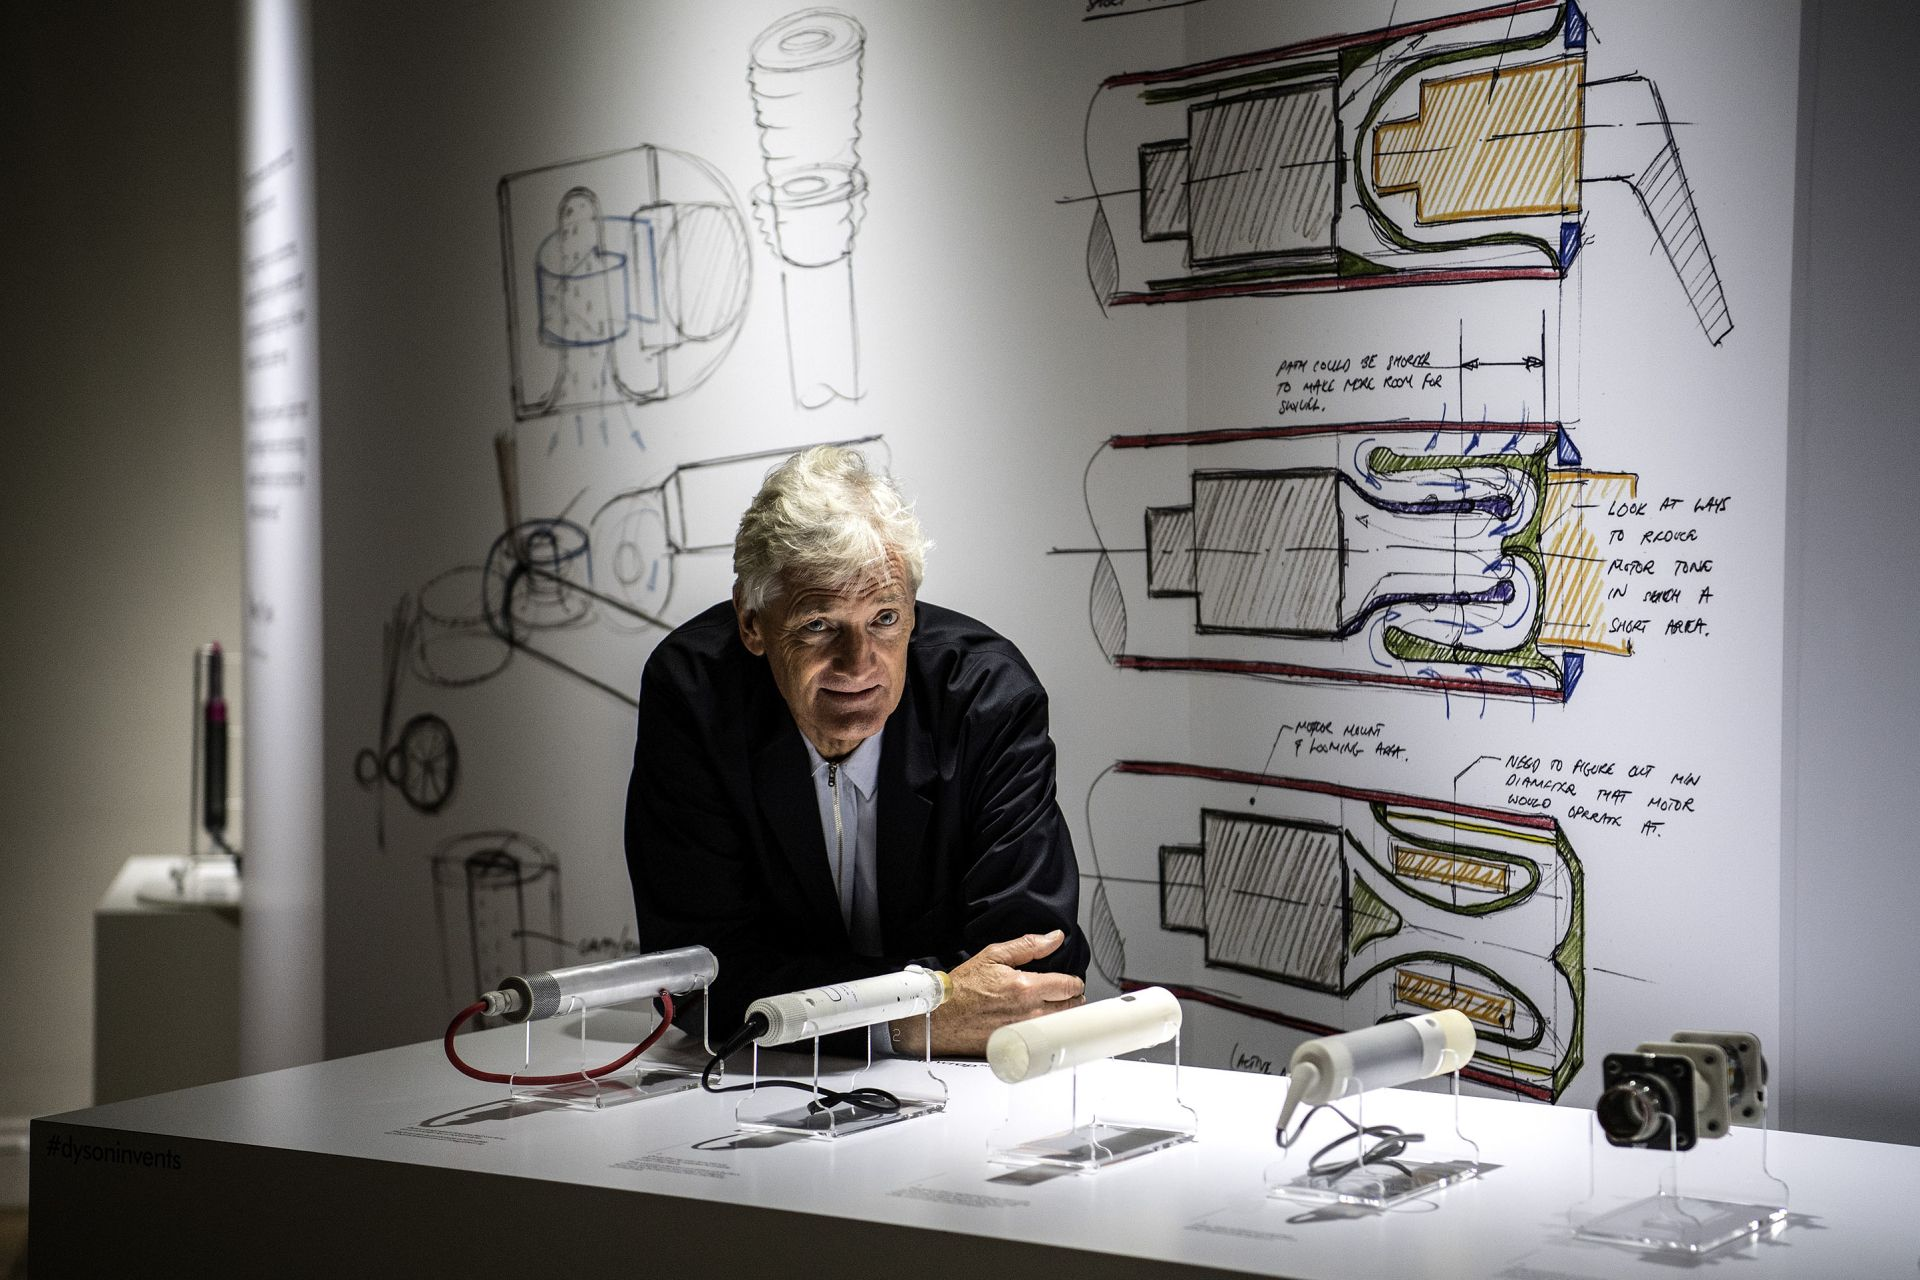 James Dyson poses with products during a photo session at a hotel in Paris (Image: Christophe Archambault/AFP)